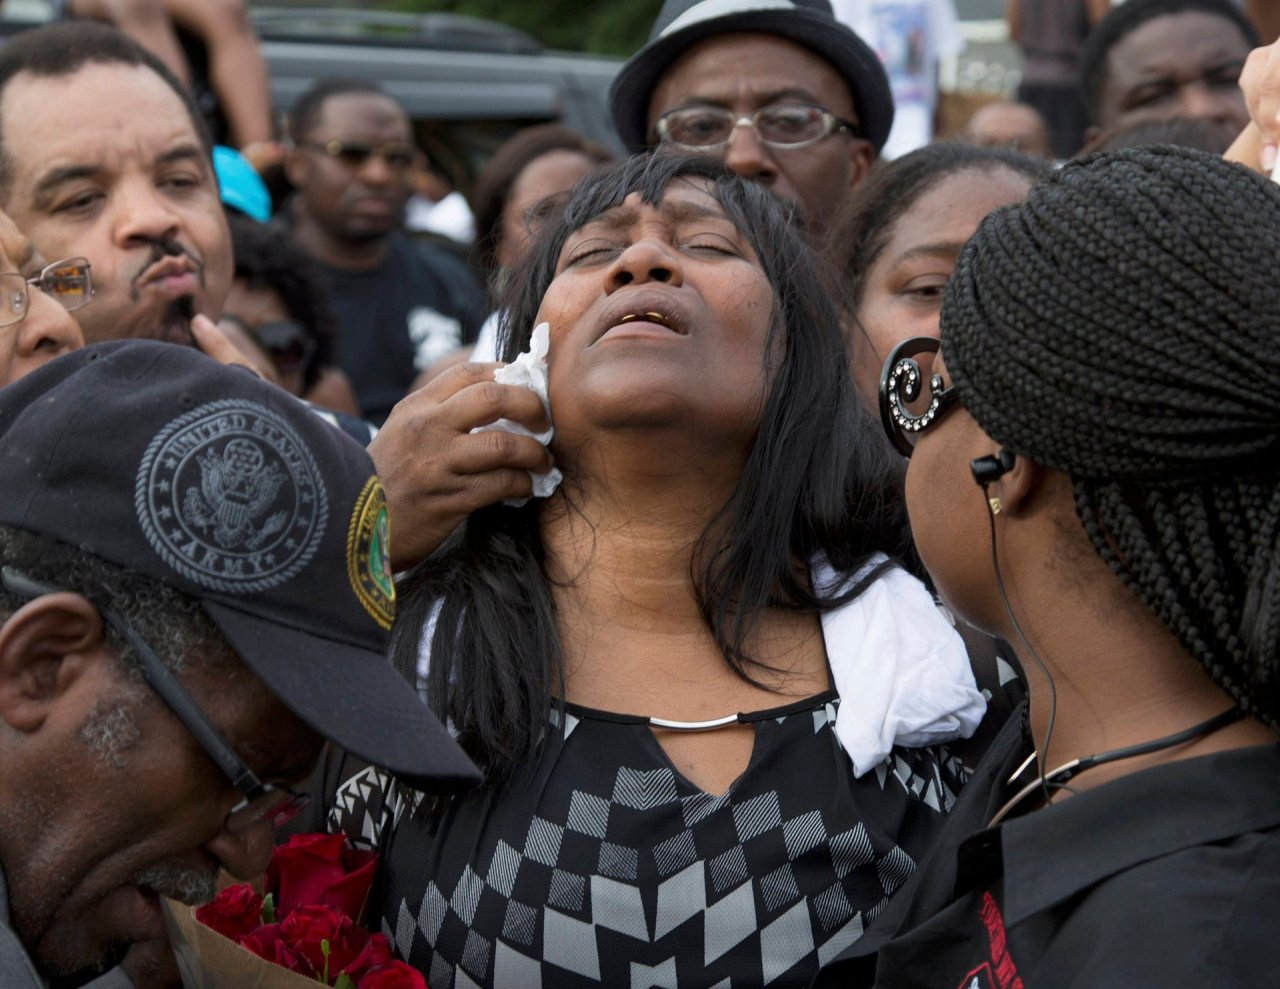 Baton Rouge, USA Sandra Sterling reacts during a community vigil in memory of her nephew, Alton Sterling, who was shot dead by police Photograph: Jeffrey Dubinsky